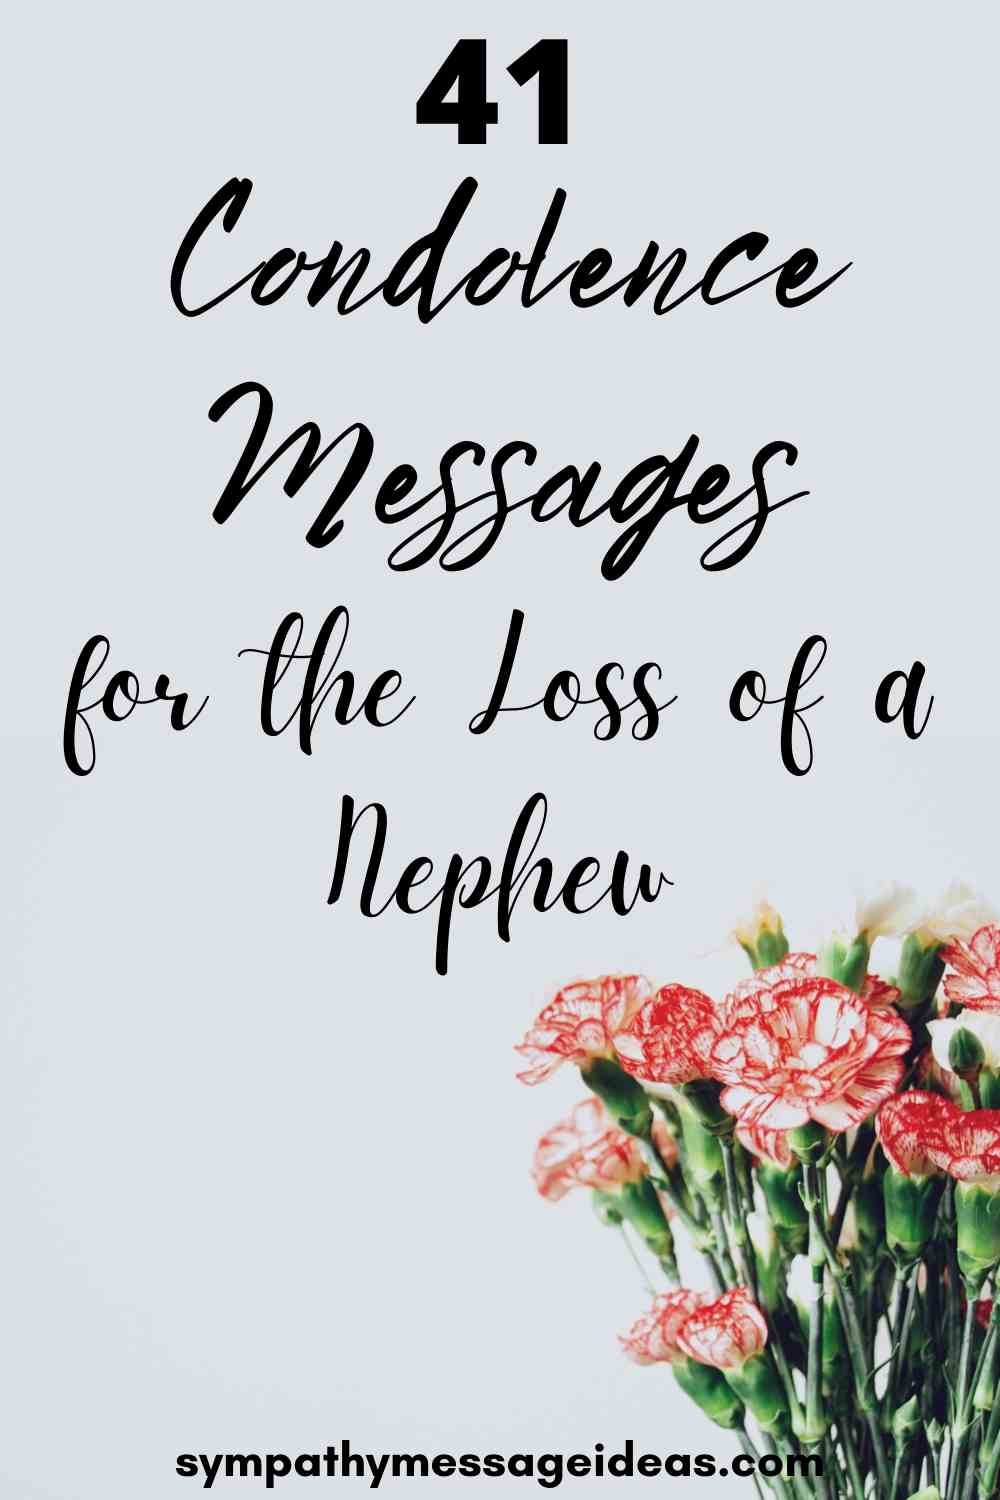 condolence messages for loss of nephew pinterest